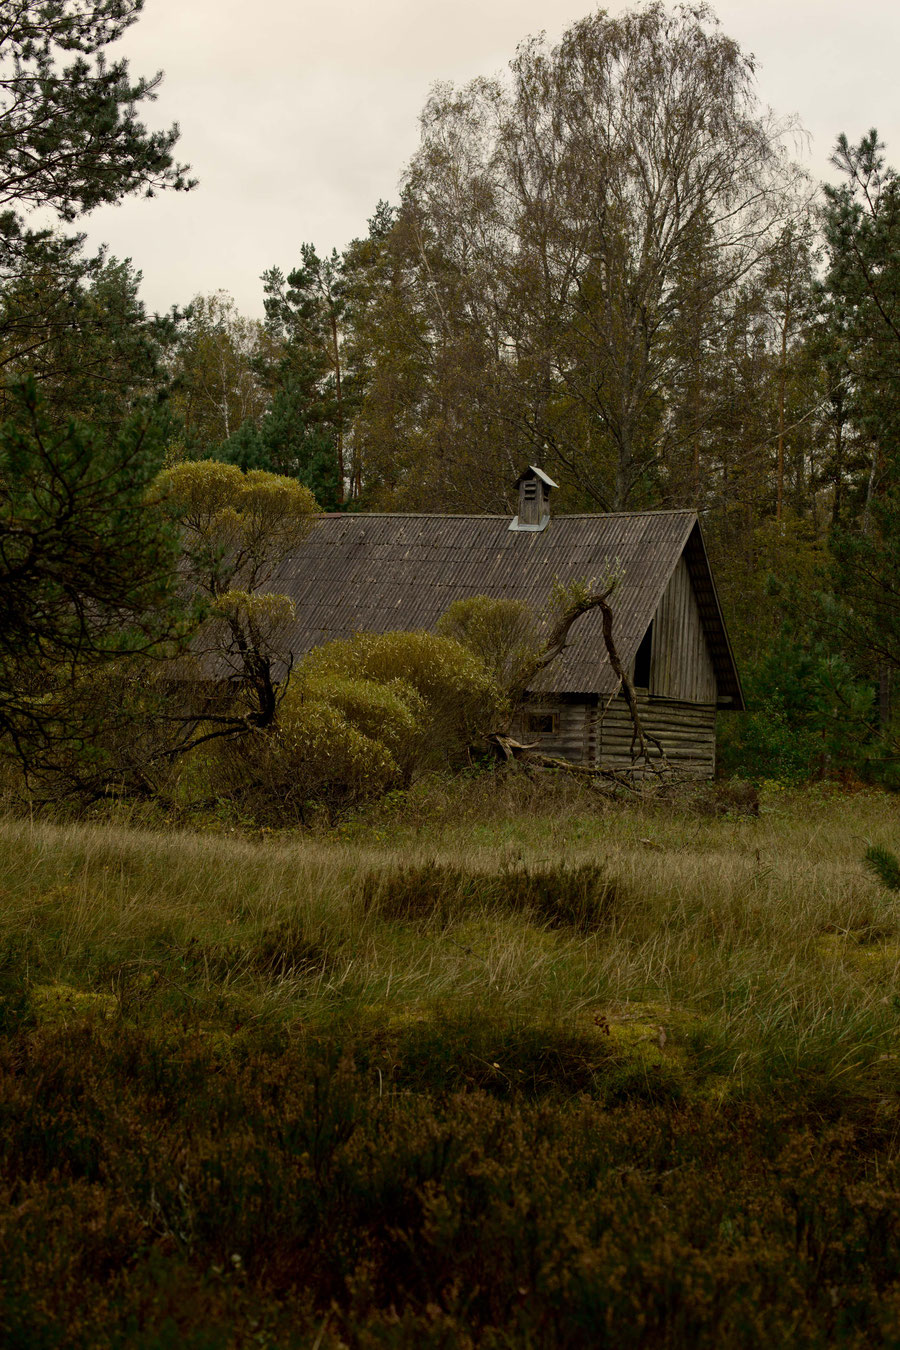 wooden house on the side of the road, Latvia